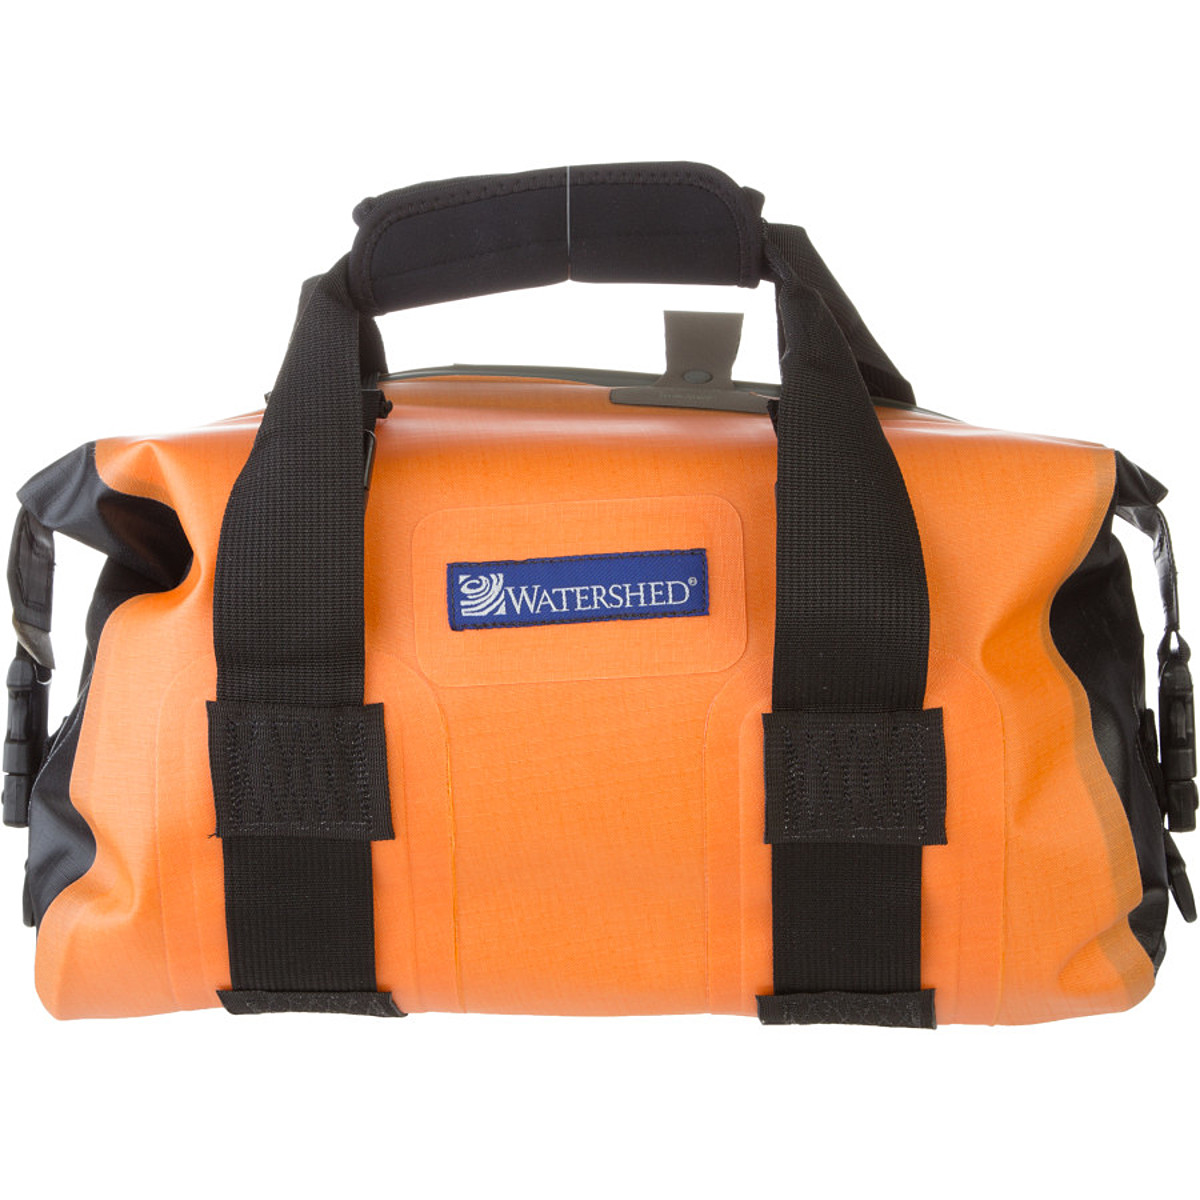 Watershed Go Forth Dry Bag